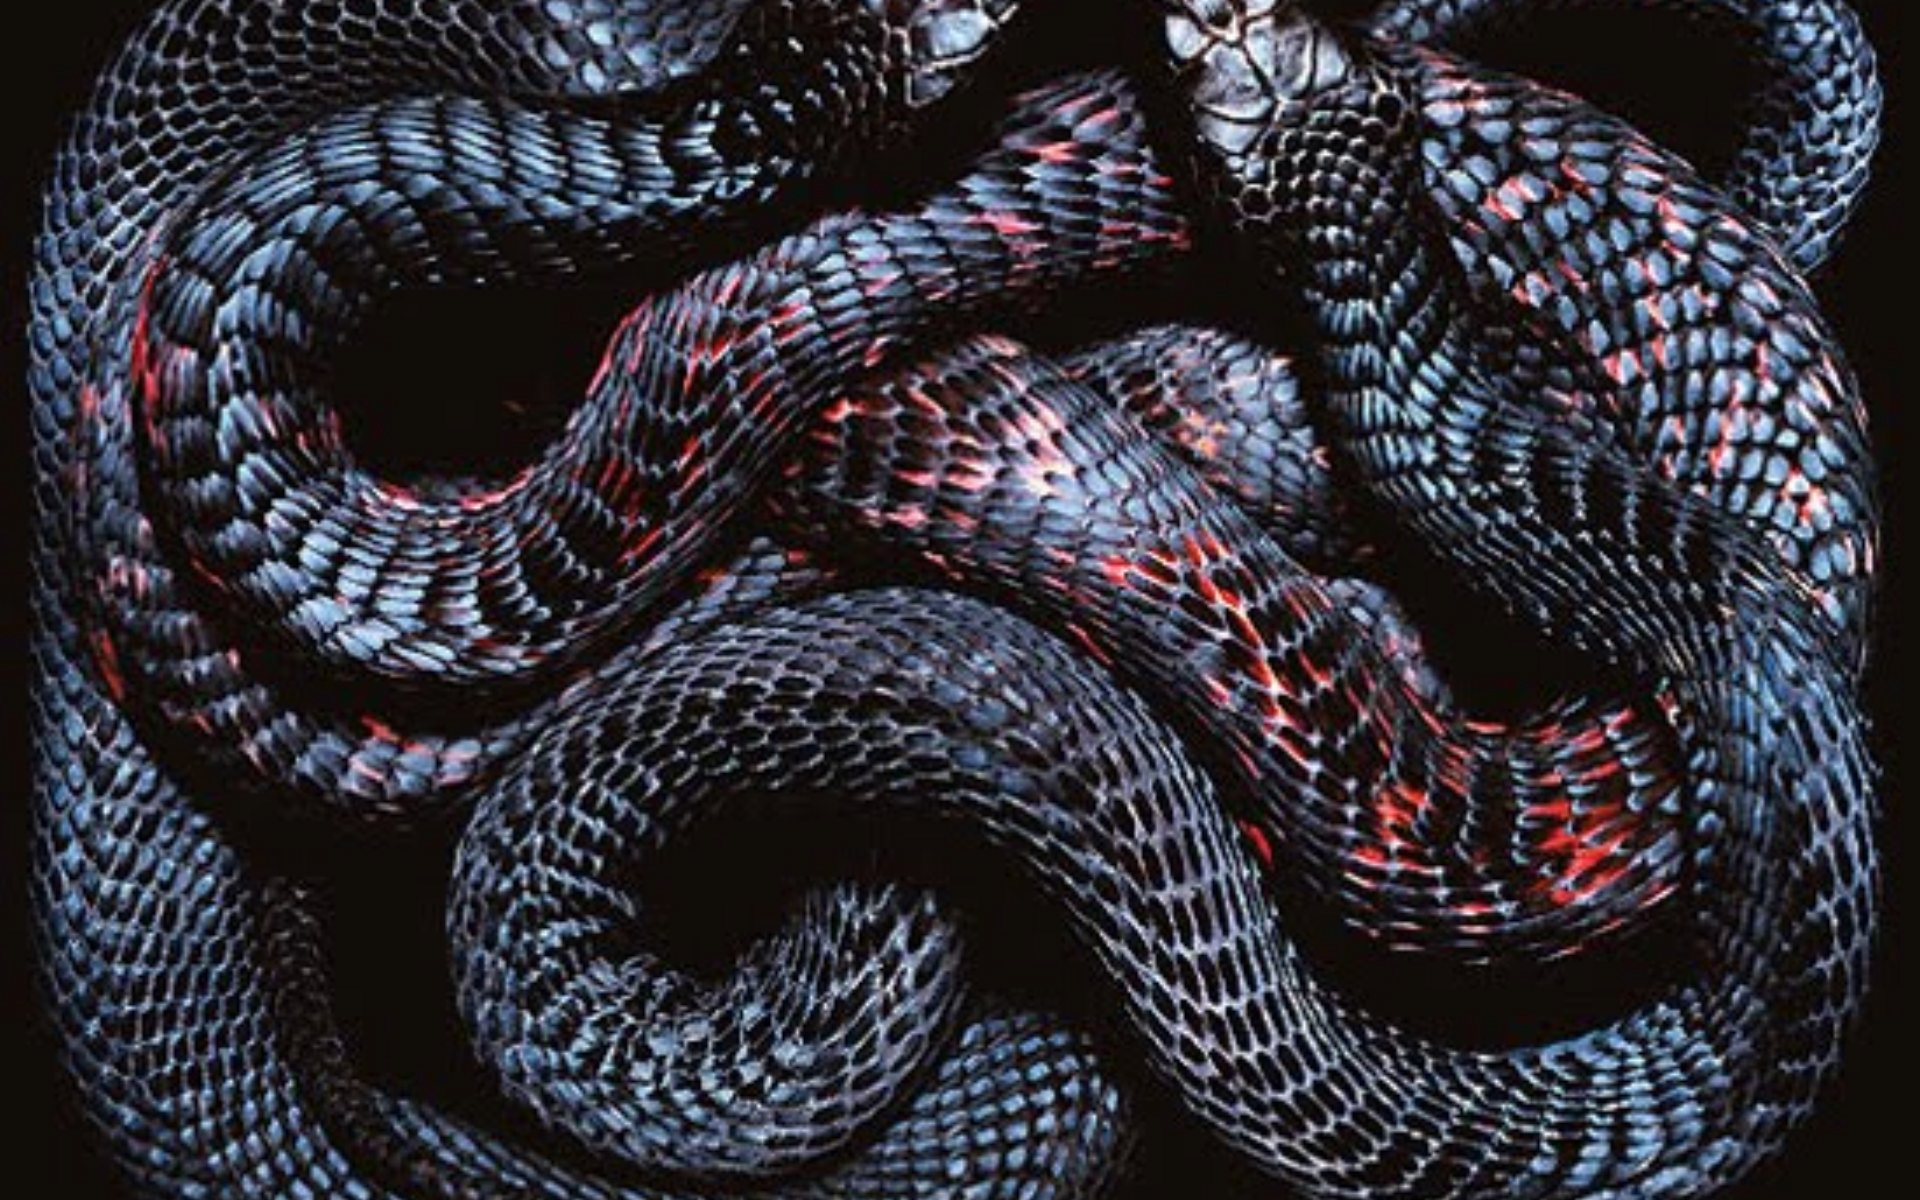 viper snake backgrounds hd | pixelstalk